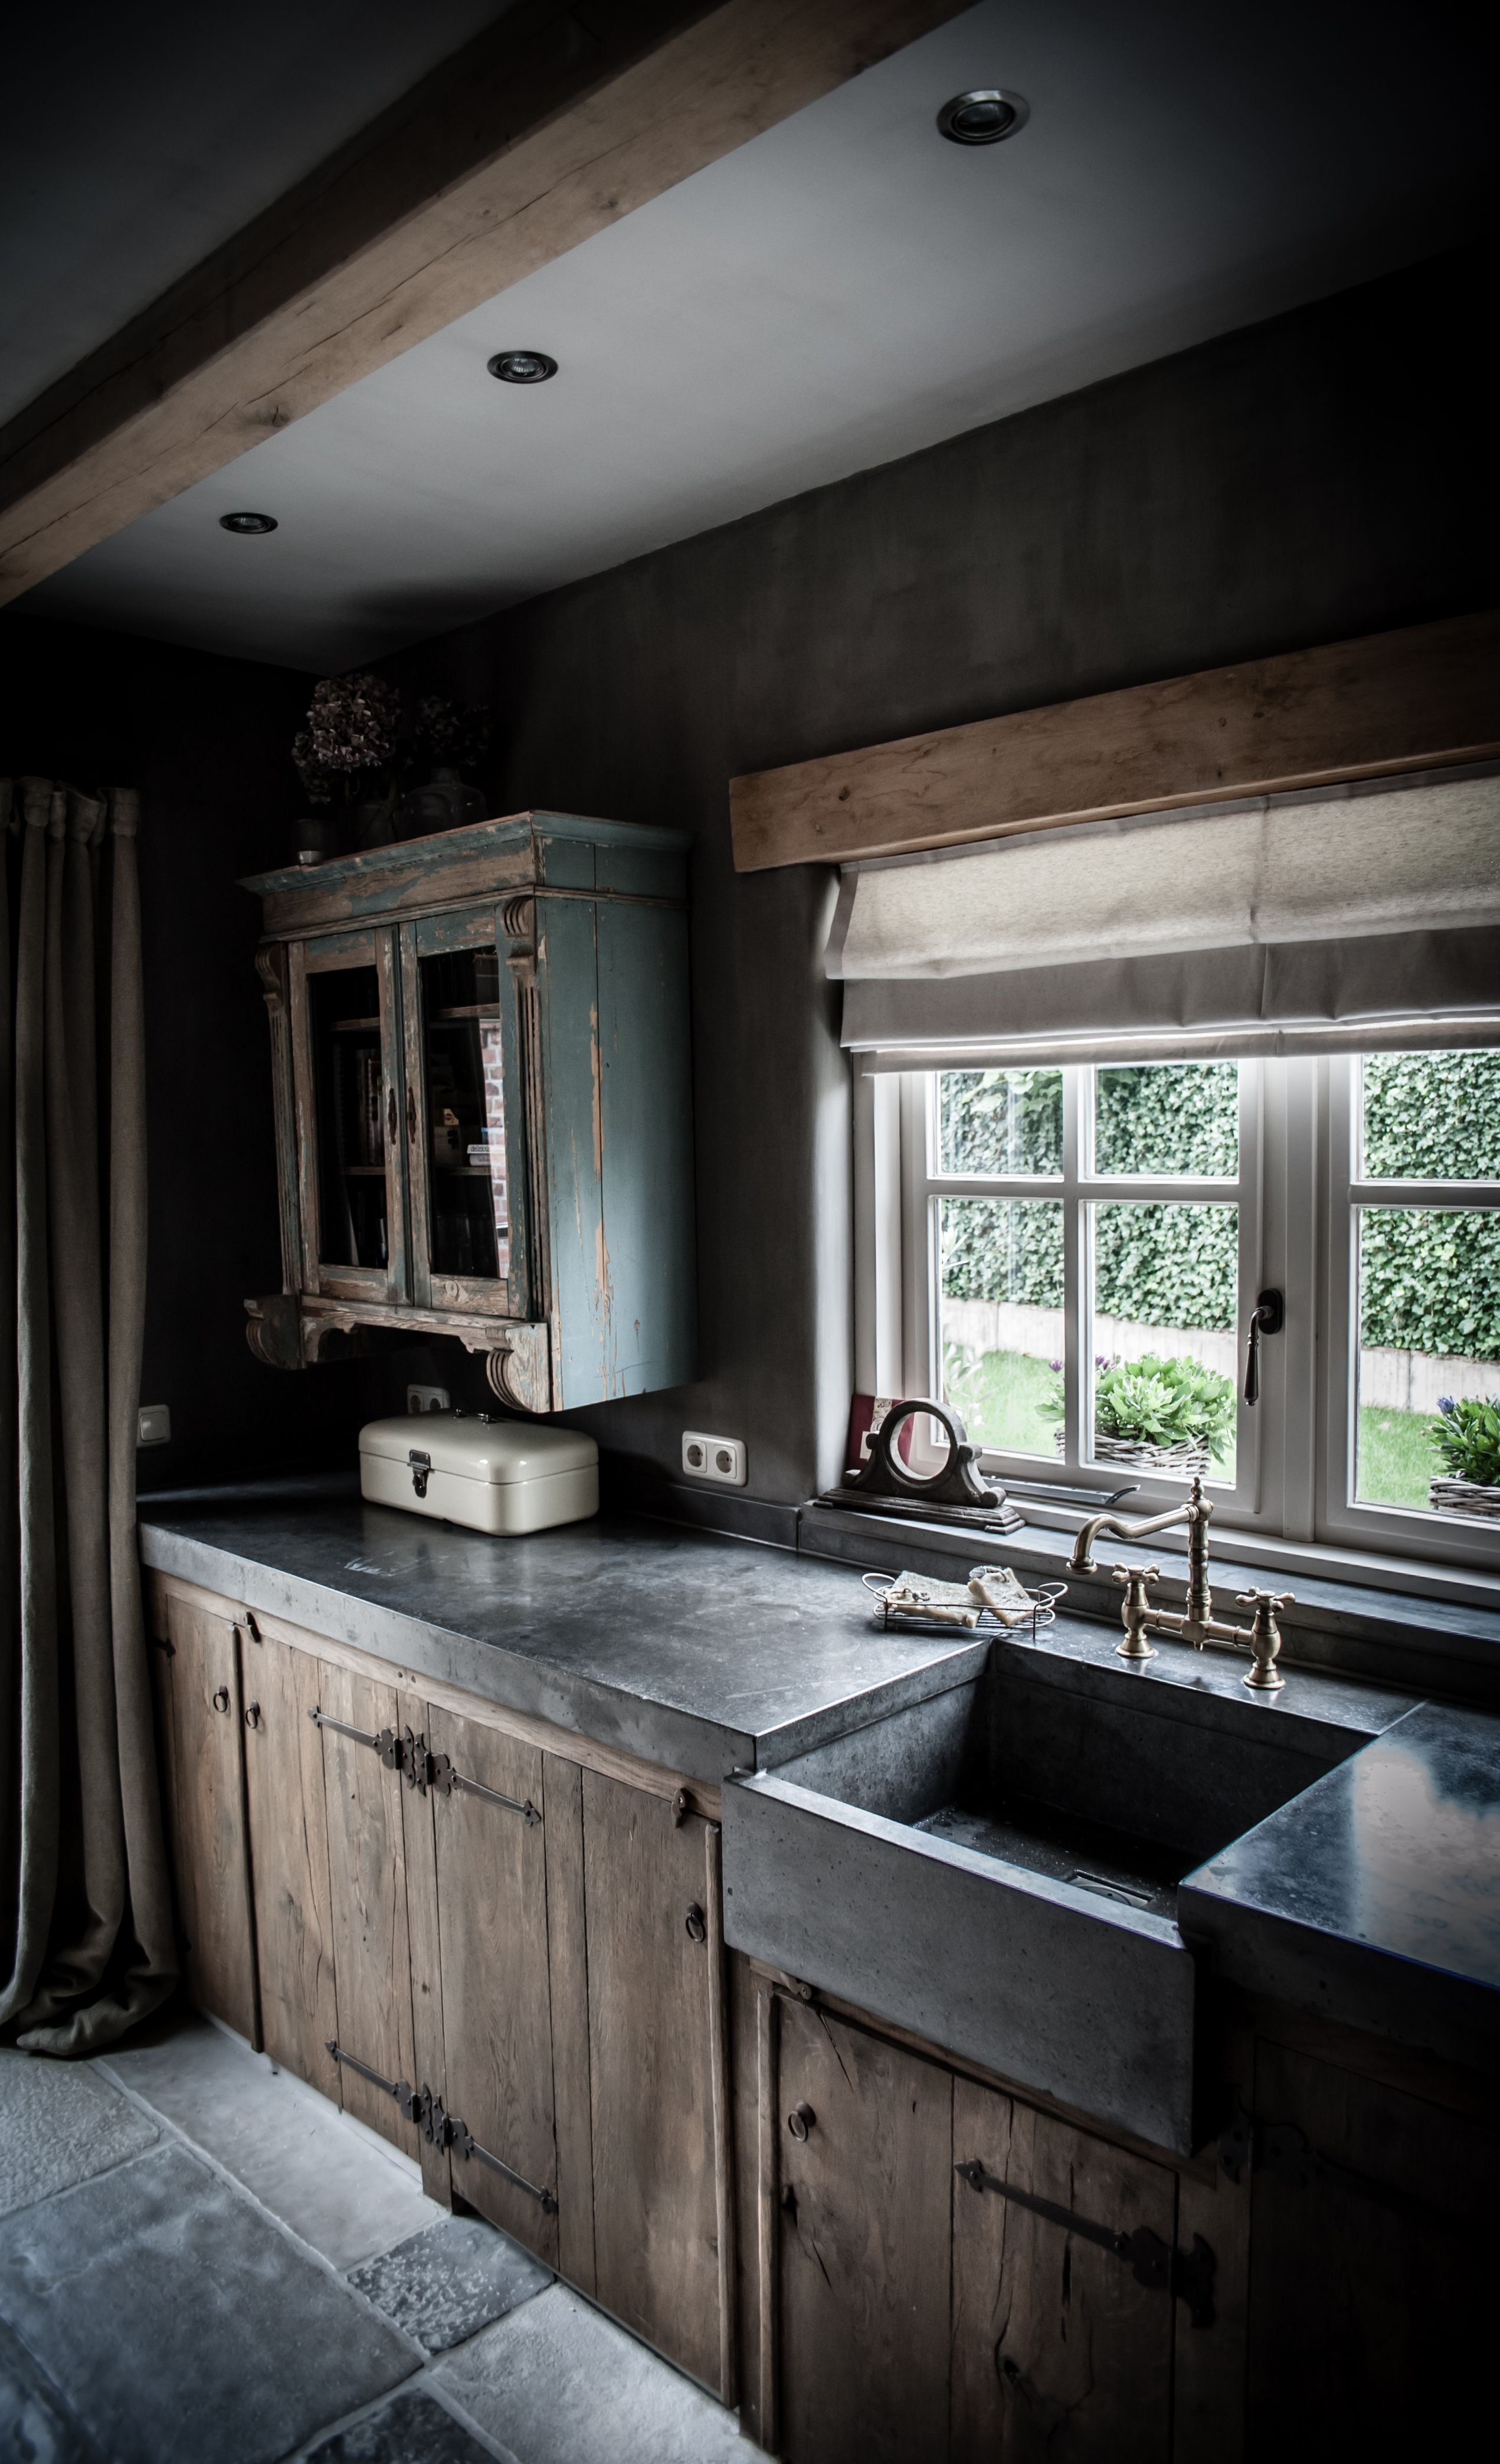 Soapstone, sinks and kitchens on pinterest